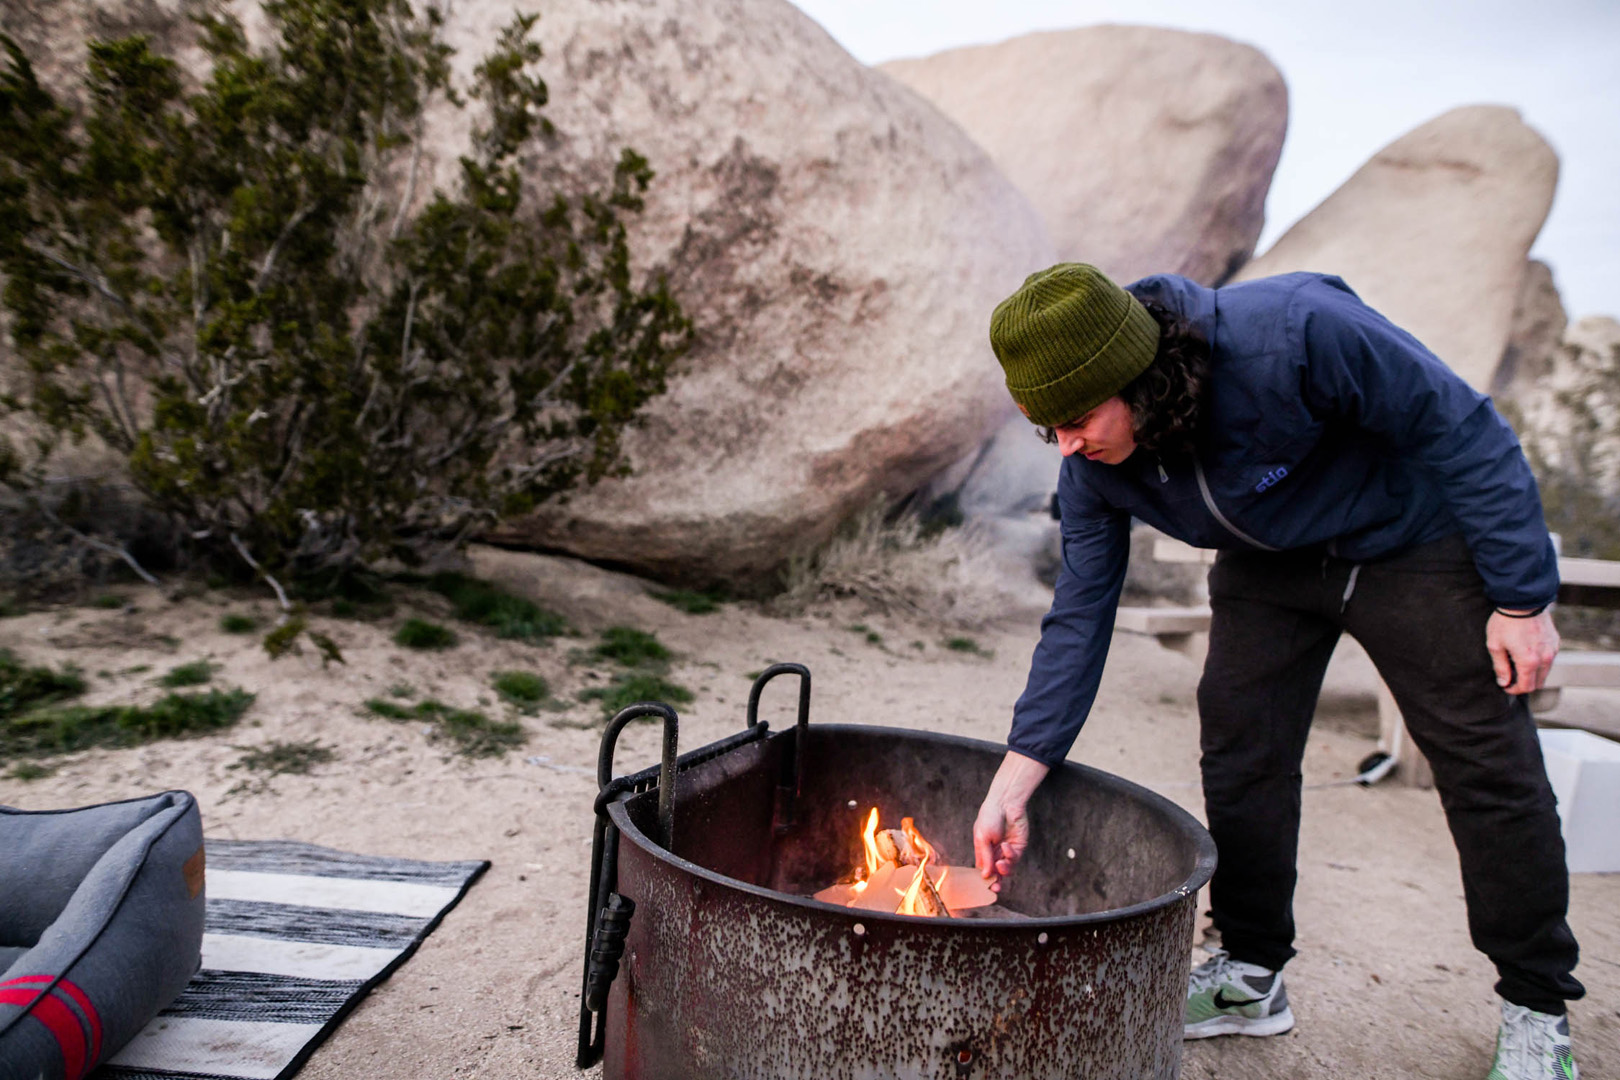 Airstream Travel Adventures Open Fire Pit